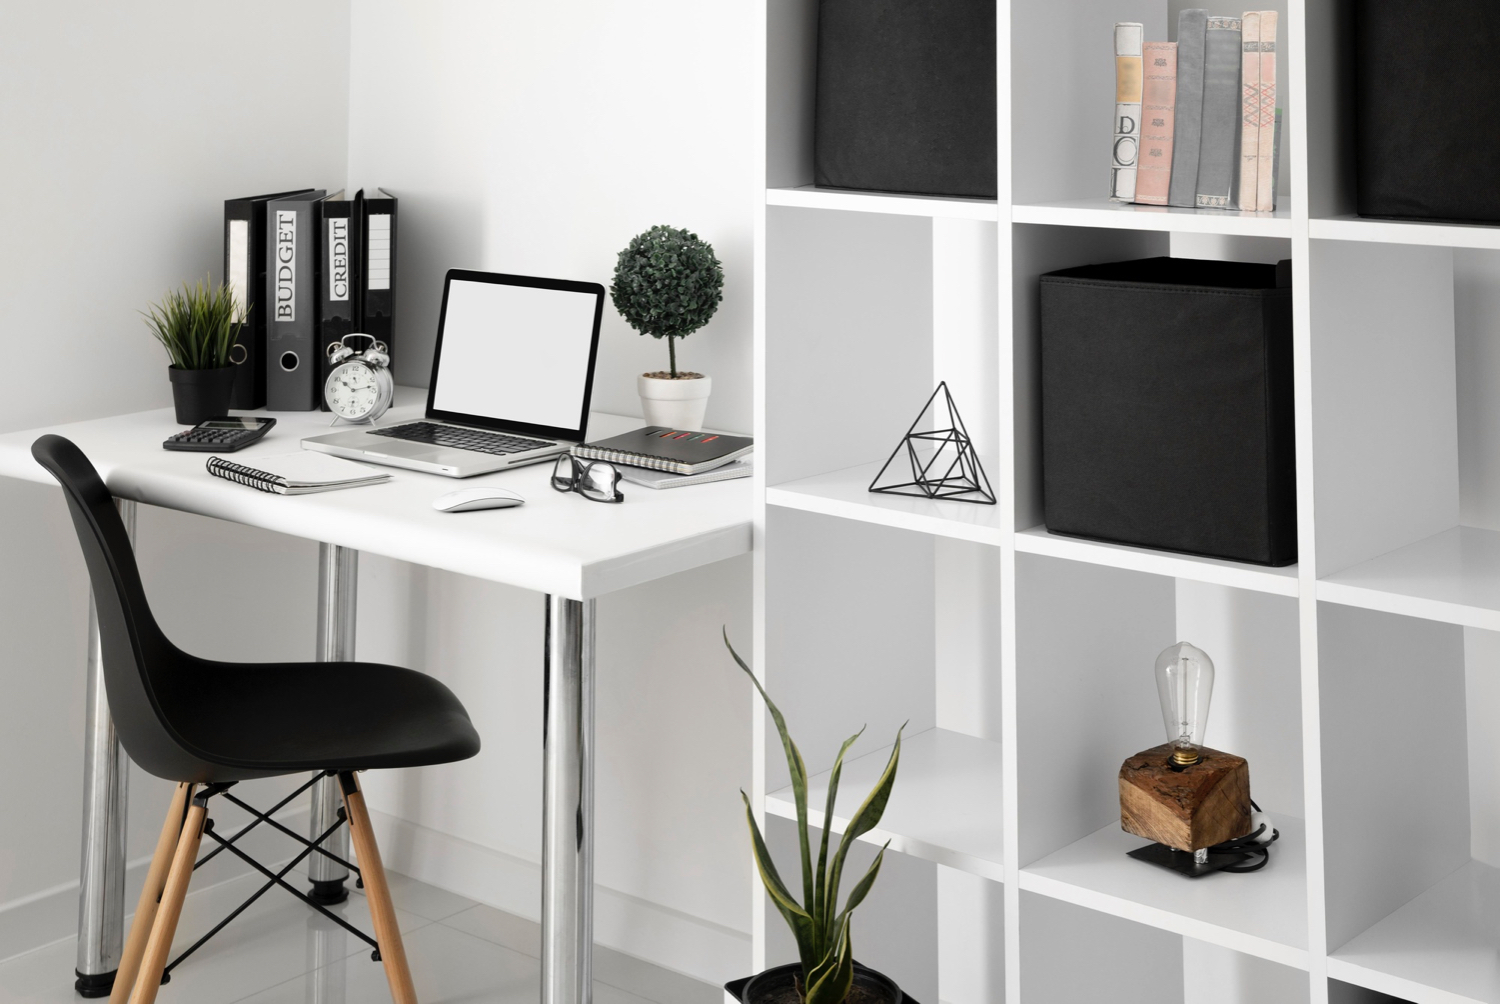 Omni's Guide to an Efficient Home Office Setup